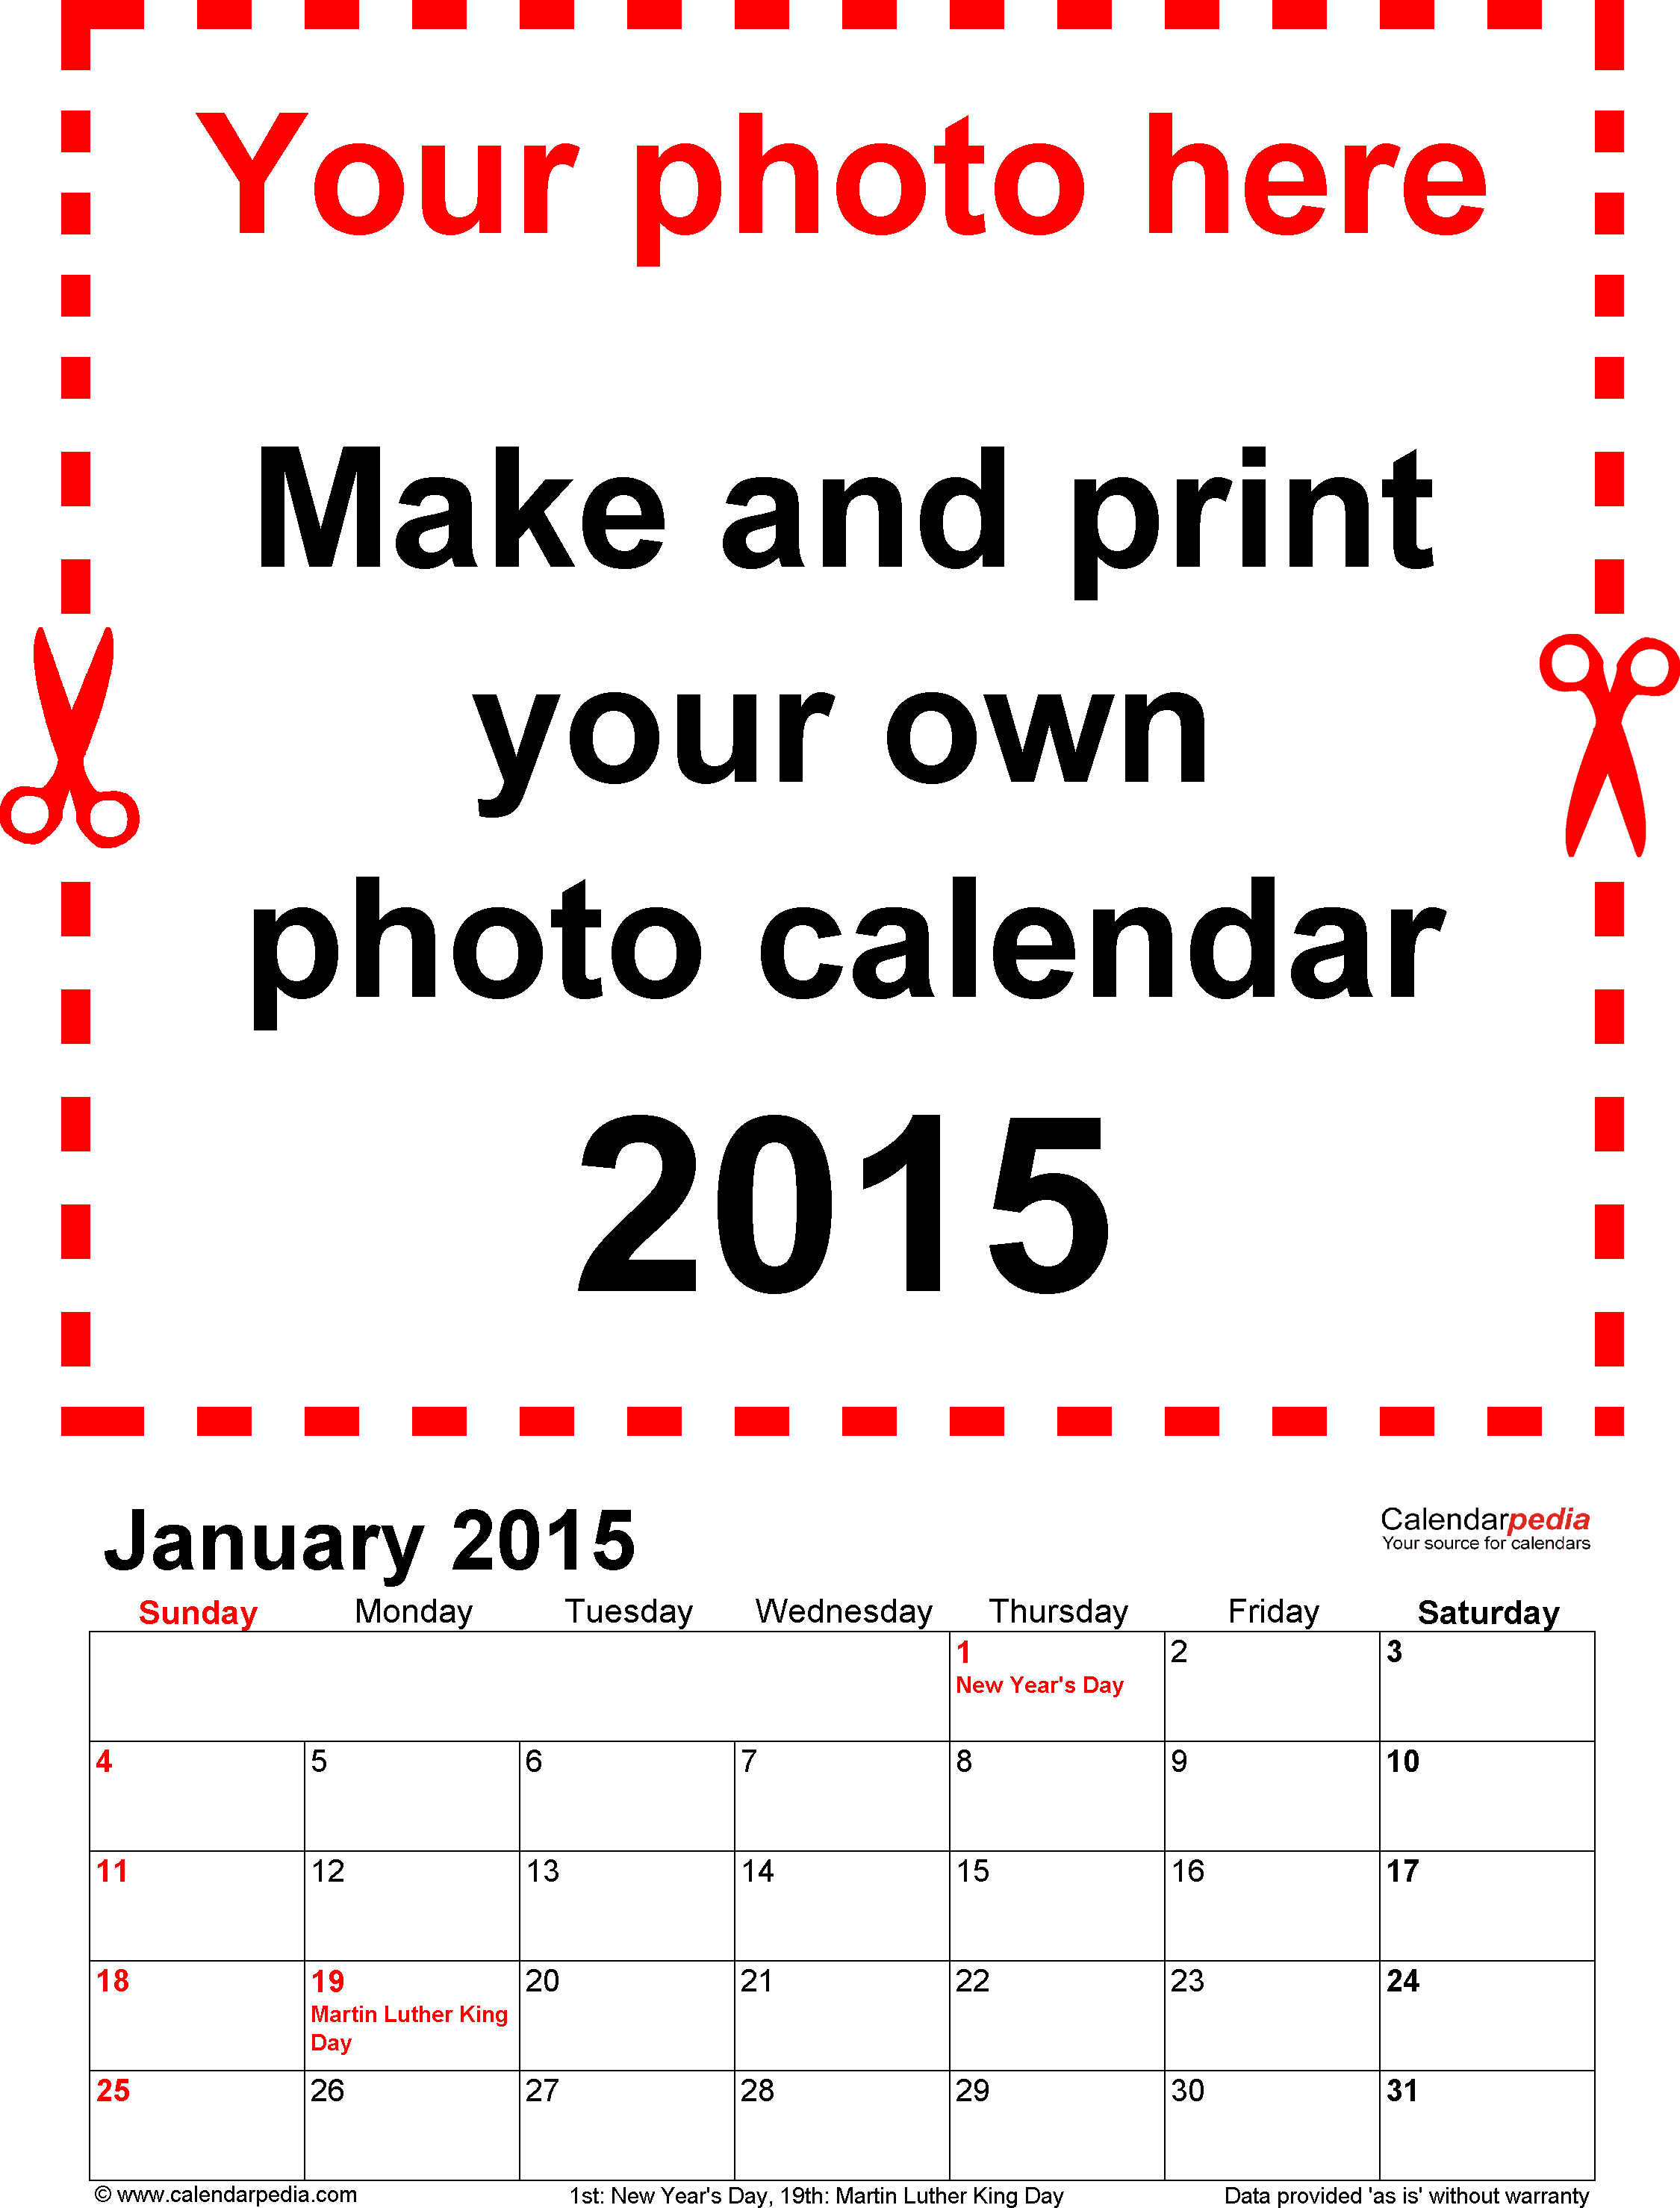 Download Template 1: Photo calendar 2015 for Word, 12 pages, portrait format, standard layout